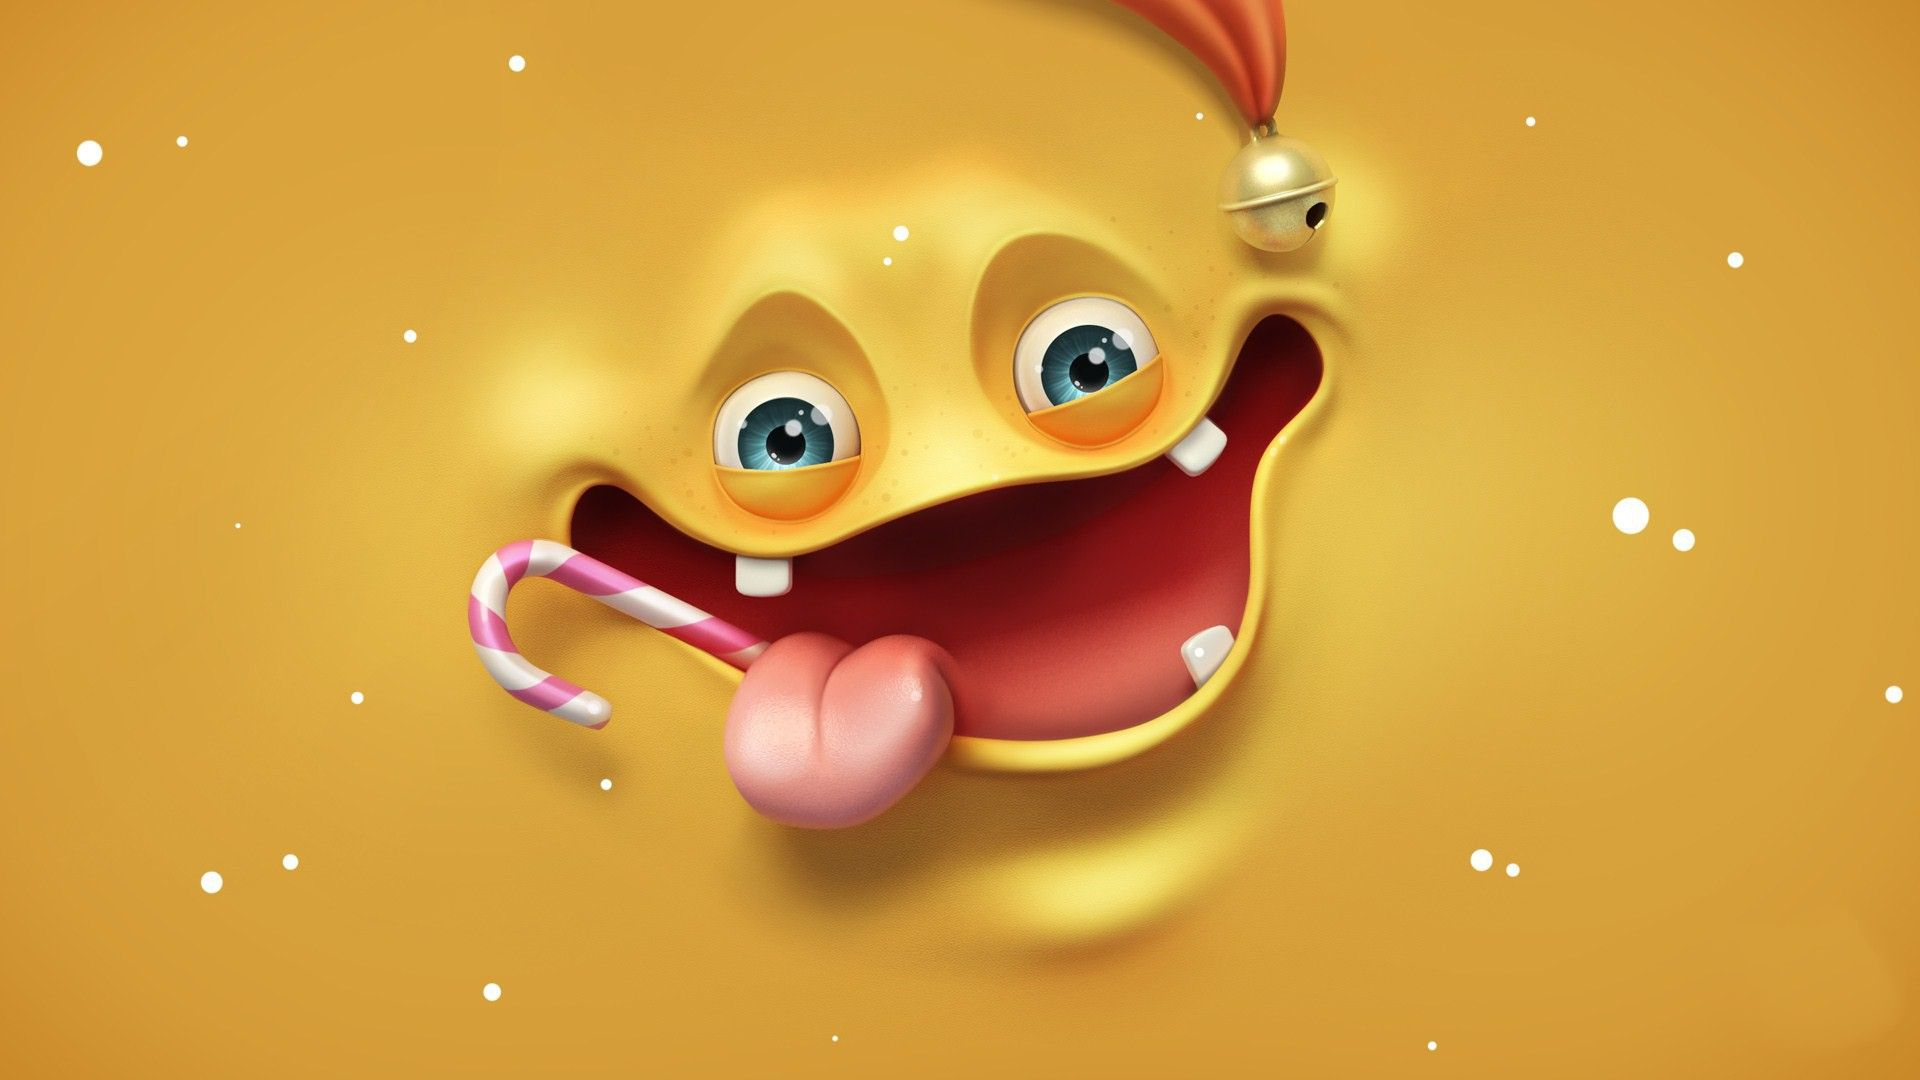 Funny Hd Wallpapers 07 Cool Wallpapers Hd Funny Wallpaper Cartoon Wallpaper Funny Wallpapers